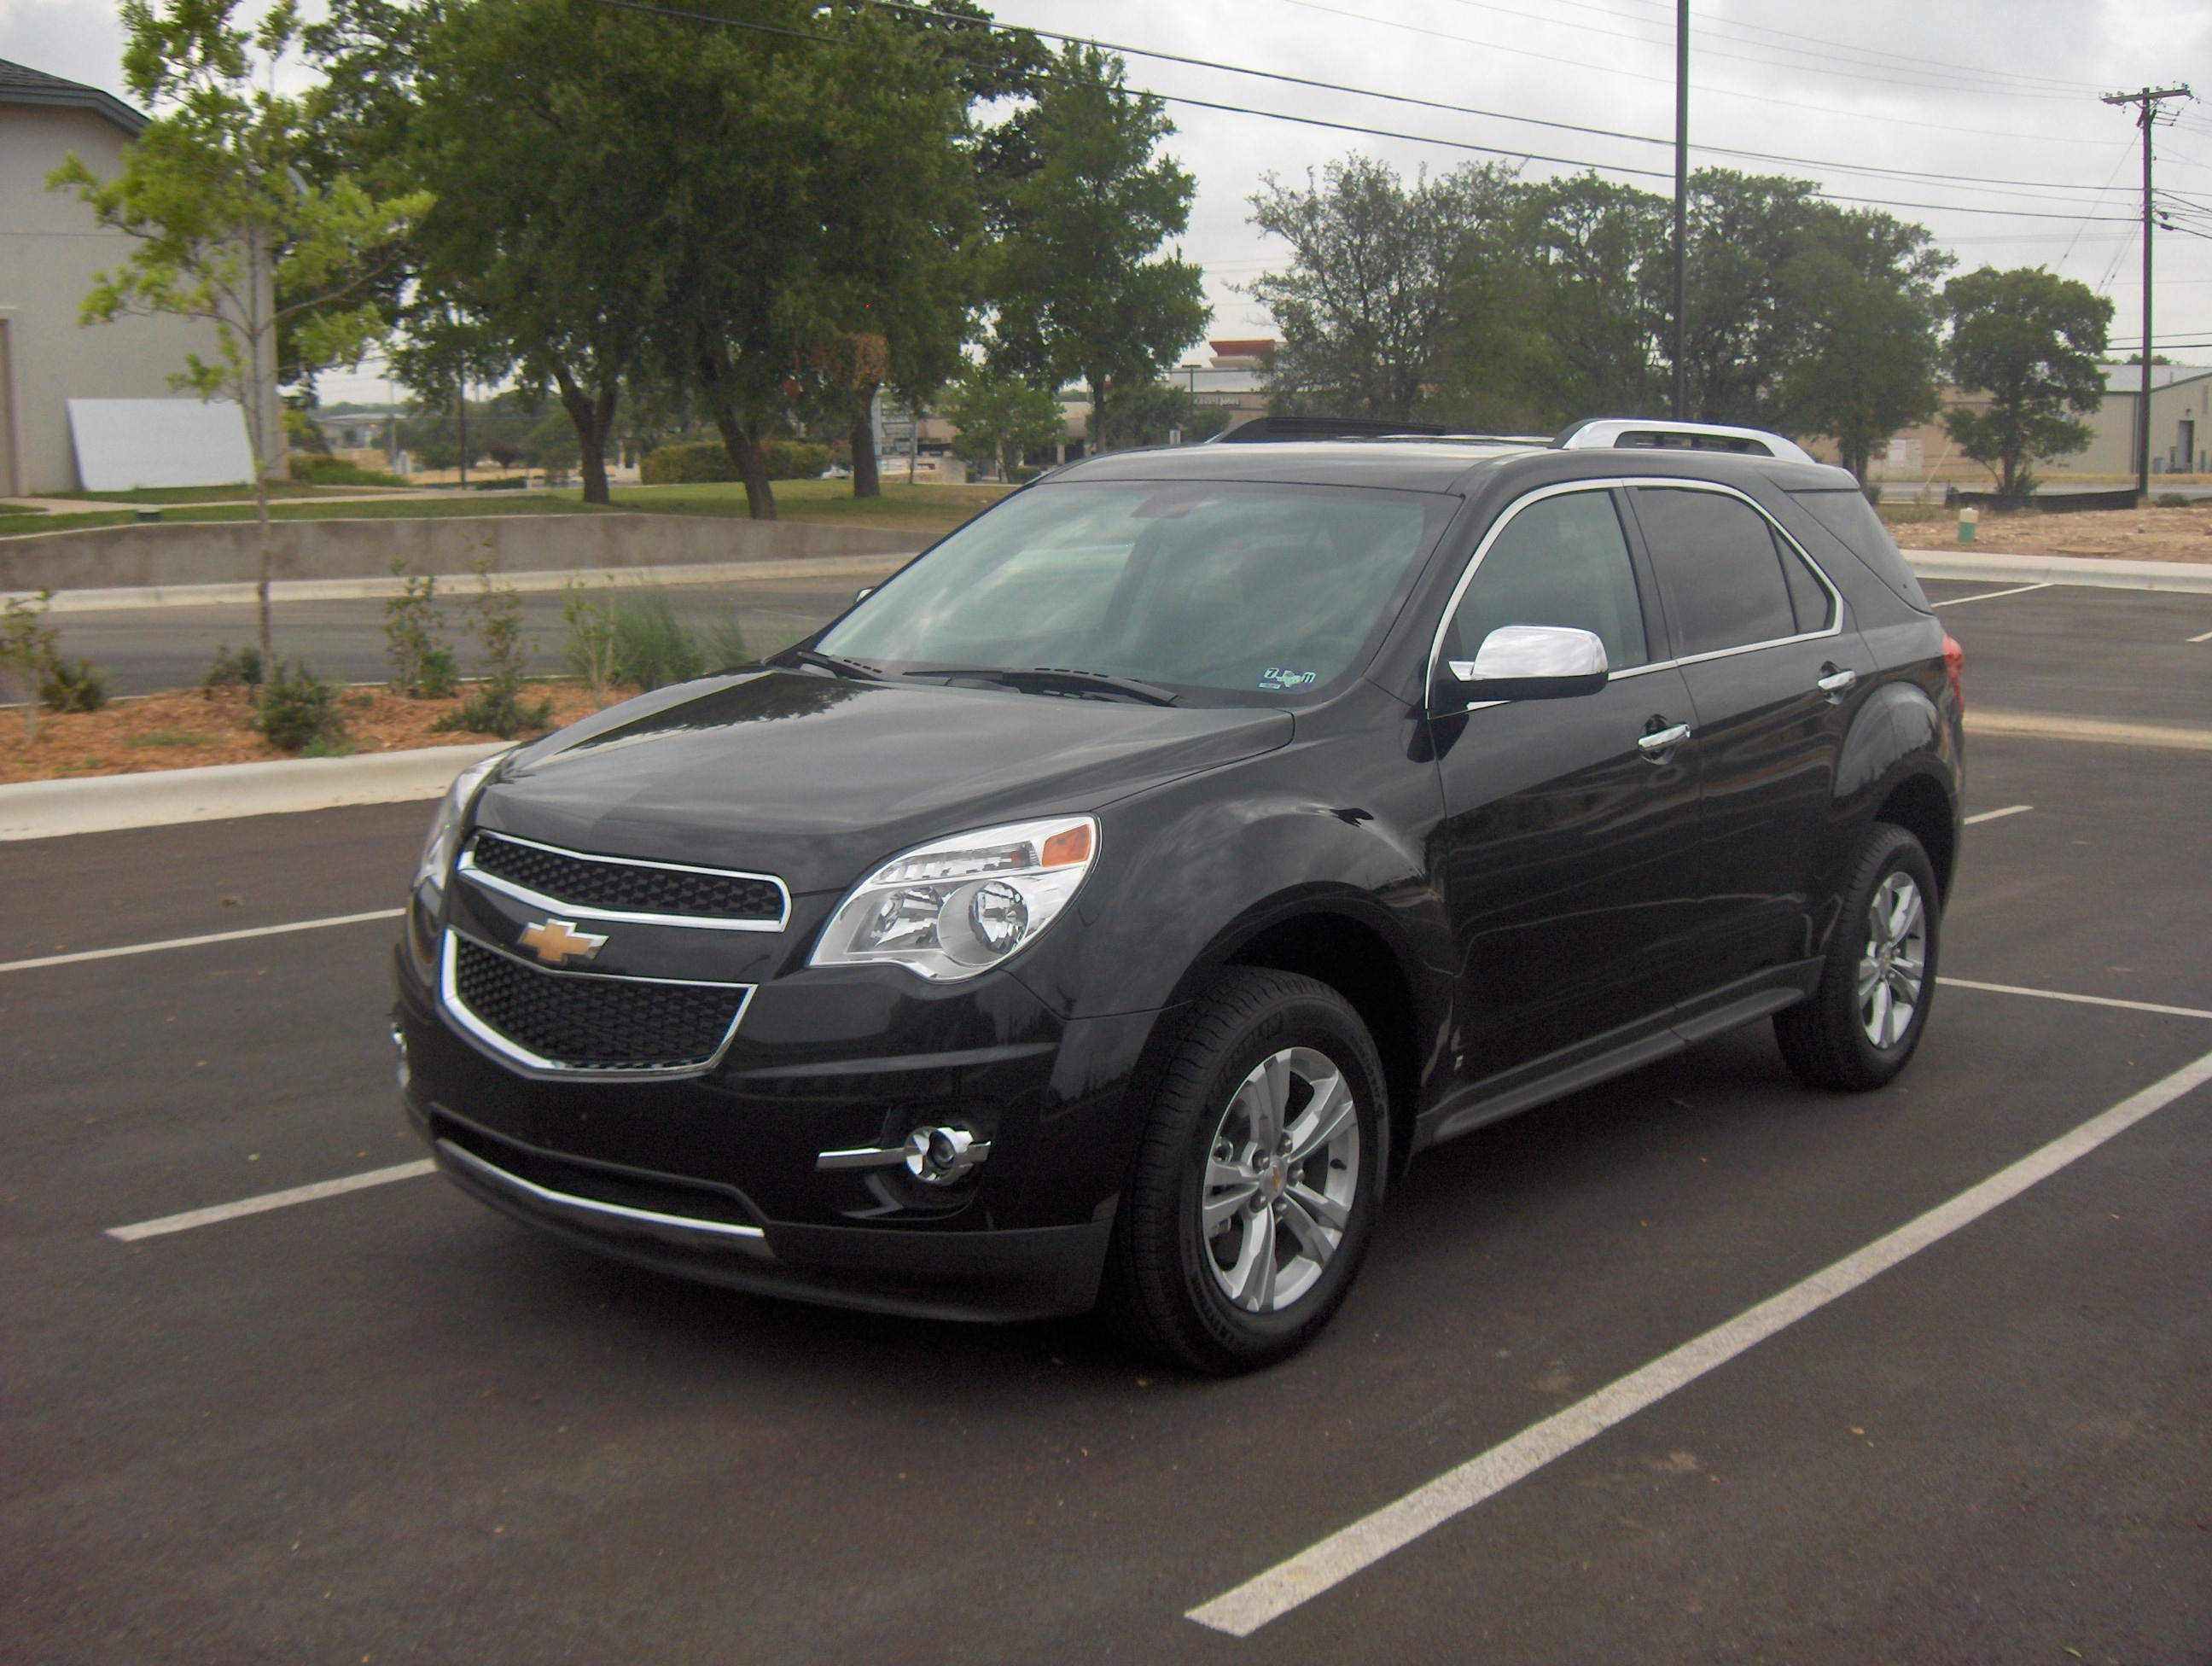 2010 chevrolet equinox 2lt review autosavant autosavant. Black Bedroom Furniture Sets. Home Design Ideas